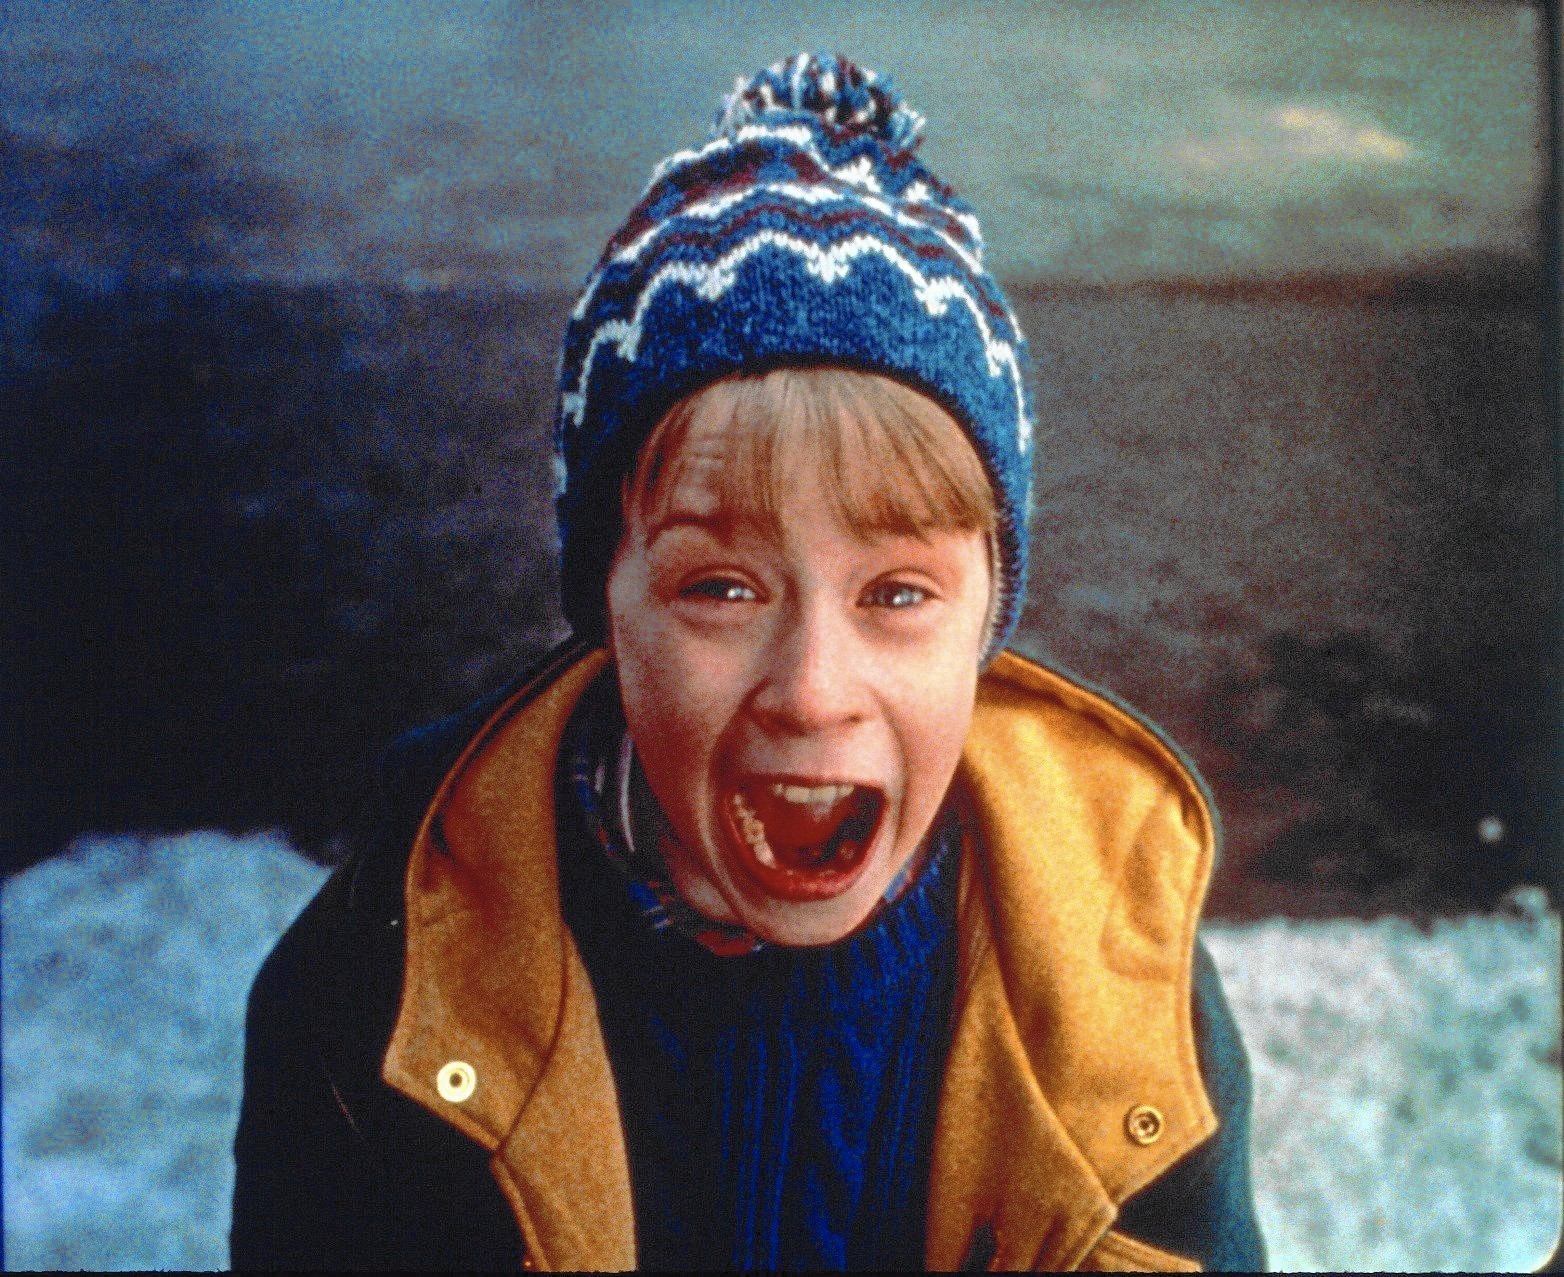 Four changes to fix Home Alone for today Chicago Tribune